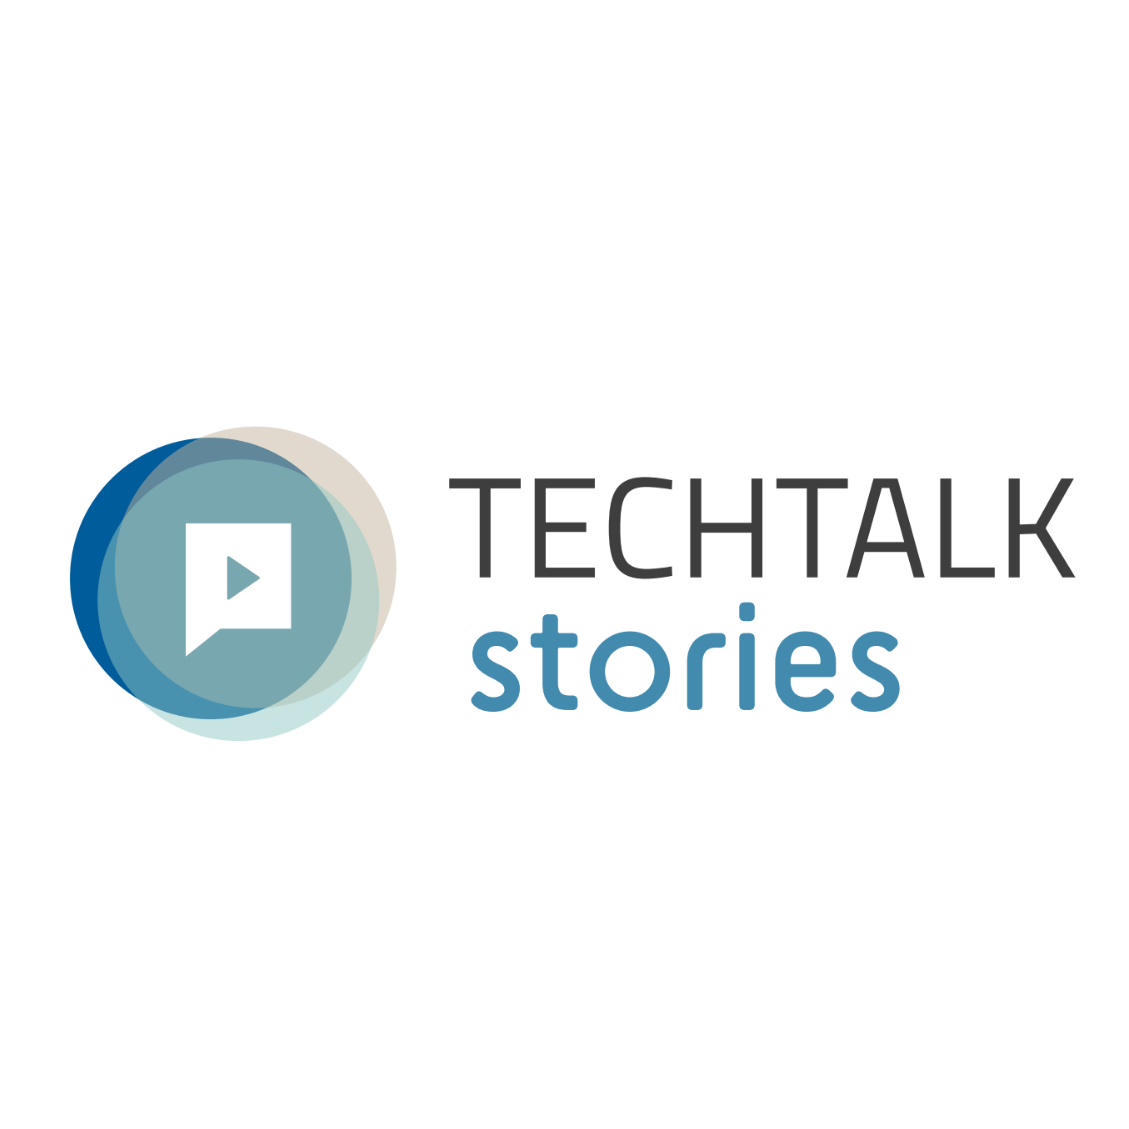 techtalk stories sharing bild2